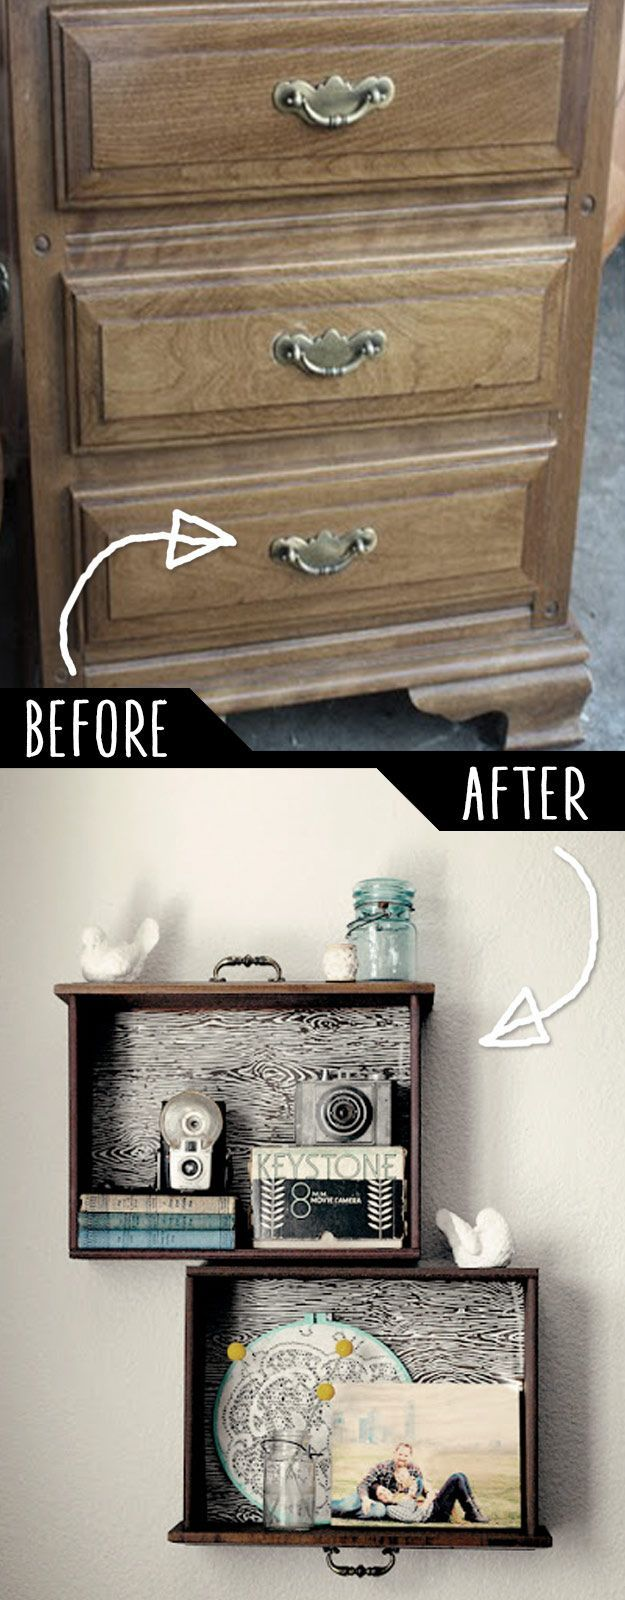 39 clever diy furniture hacks cheap home decorhome - Cheap Home Decor And Furniture